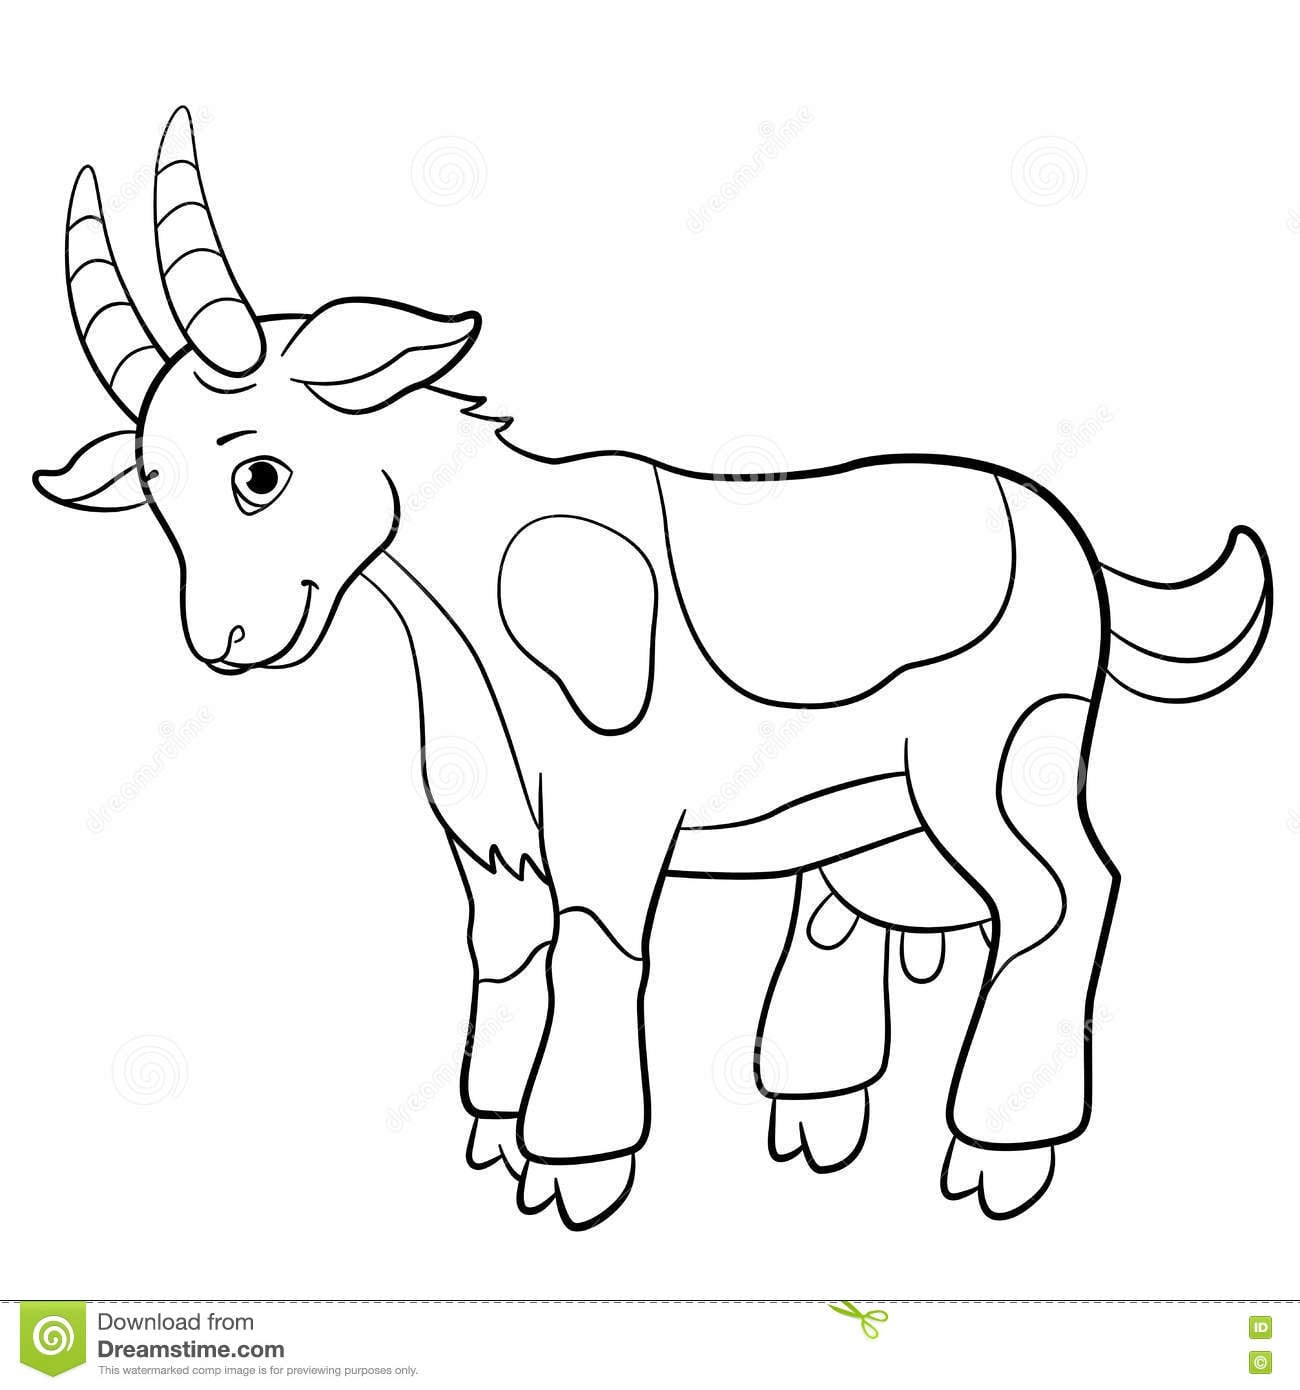 goat coloring images goat coloring pages coloring pages to download and print images coloring goat